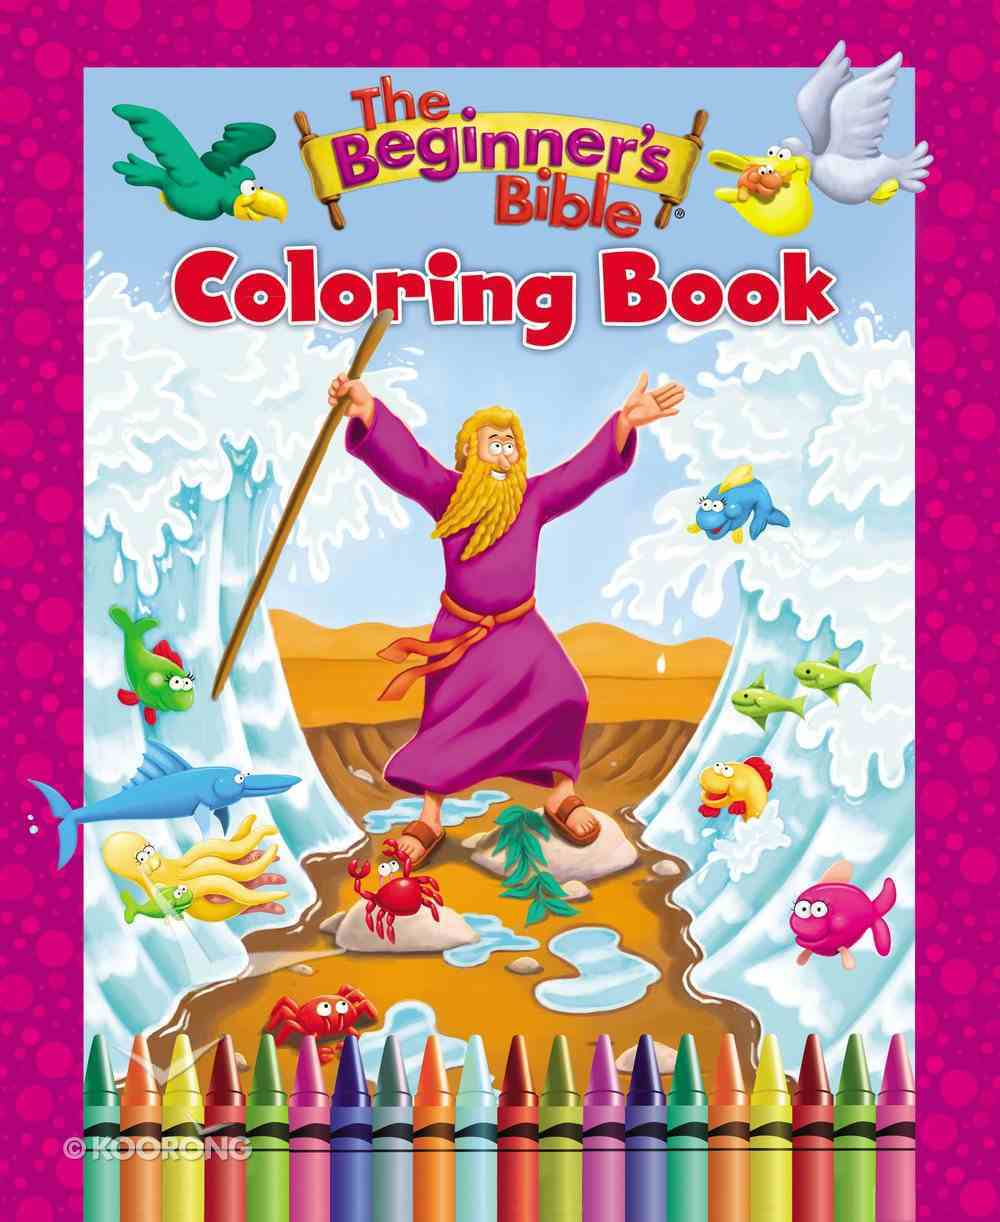 The Beginner's Bible Coloring Book Paperback